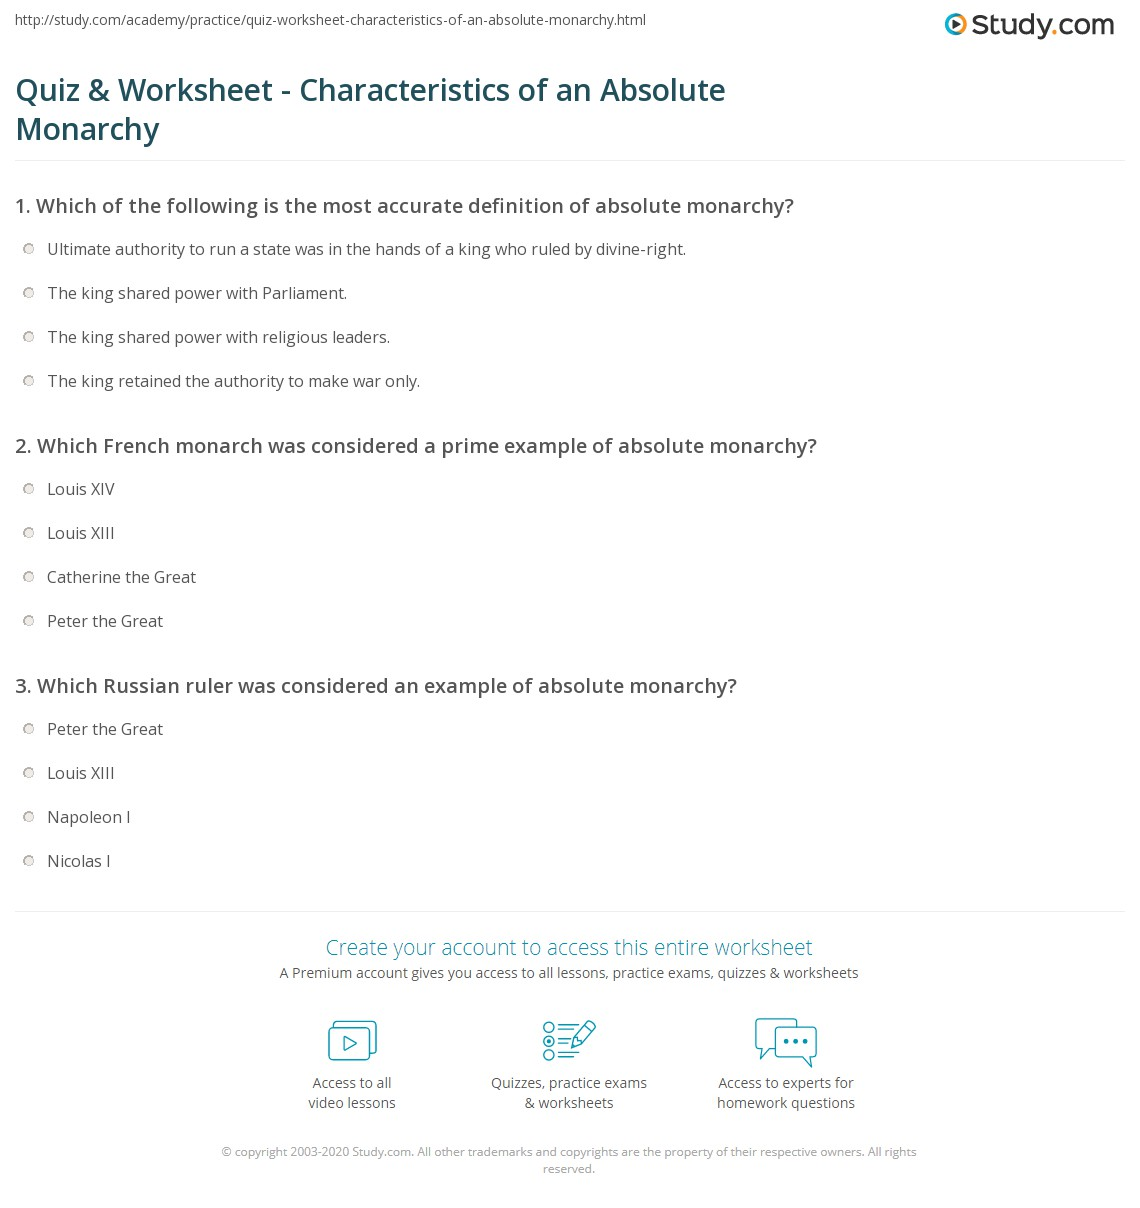 Quiz Worksheet Characteristics Of An Absolute Monarchy Study